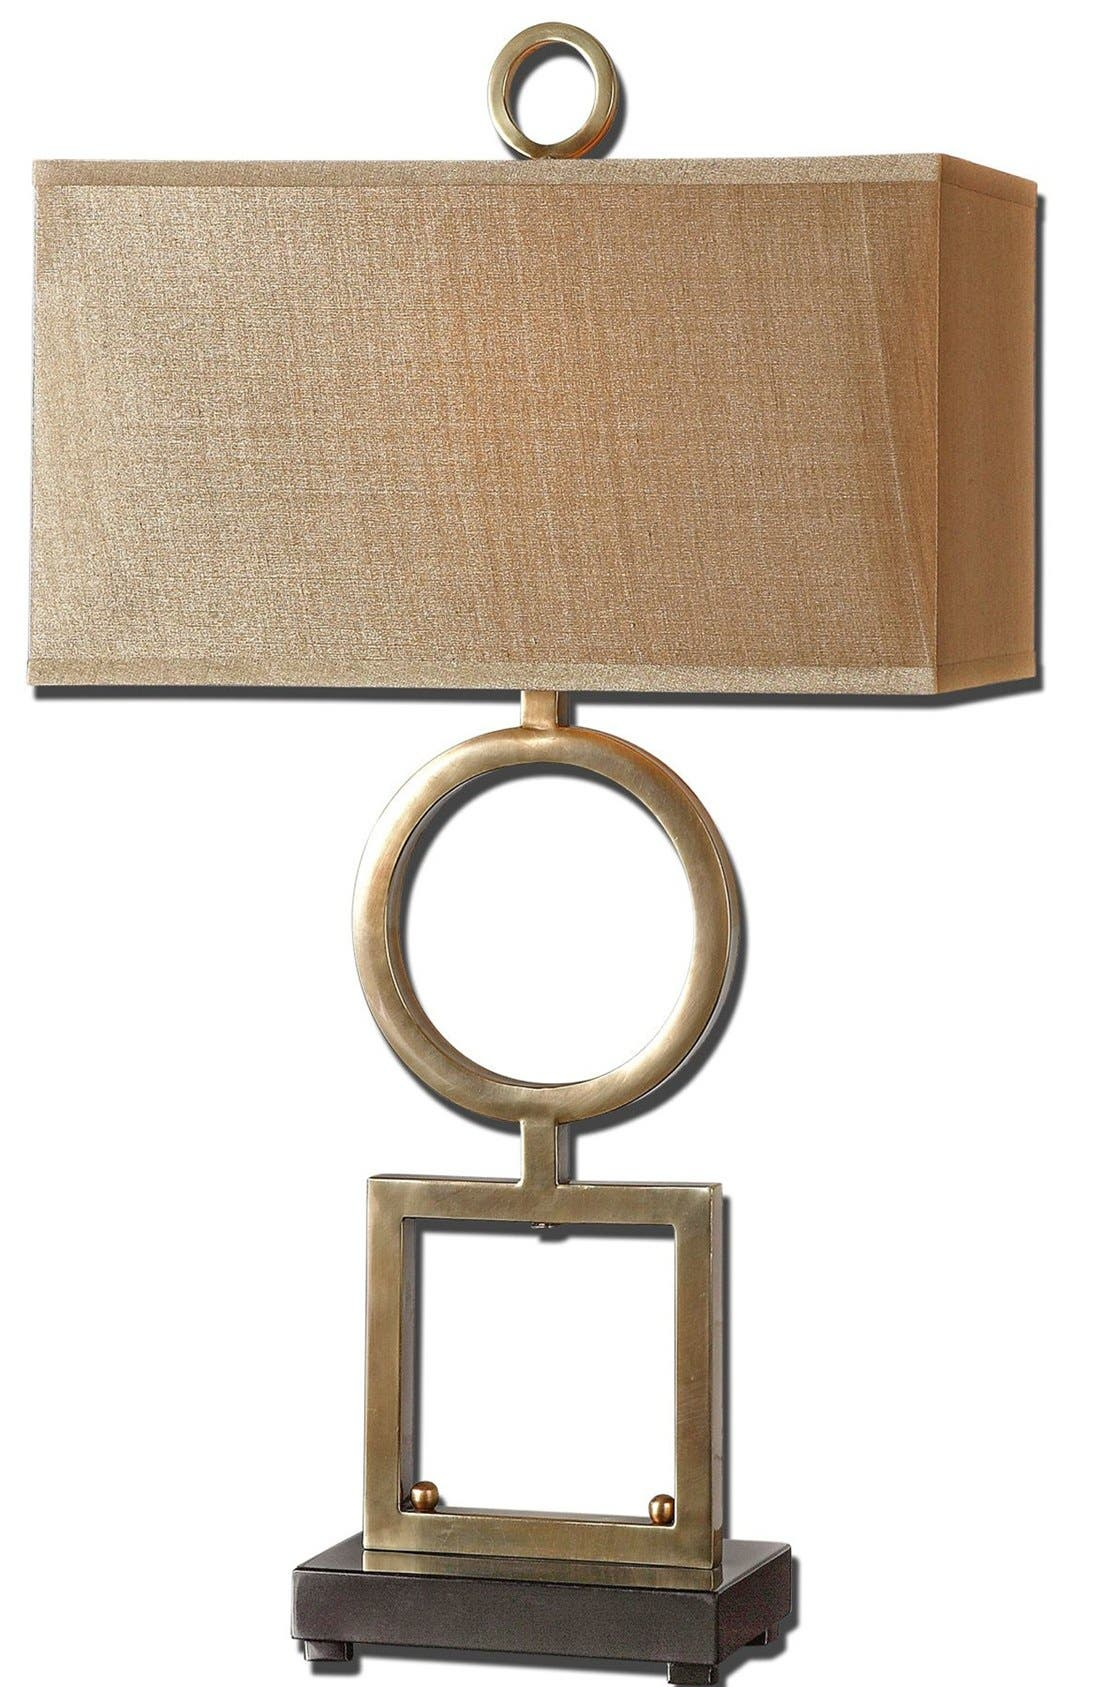 Main Image - Uttermost 'Rashawn' Table Lamp